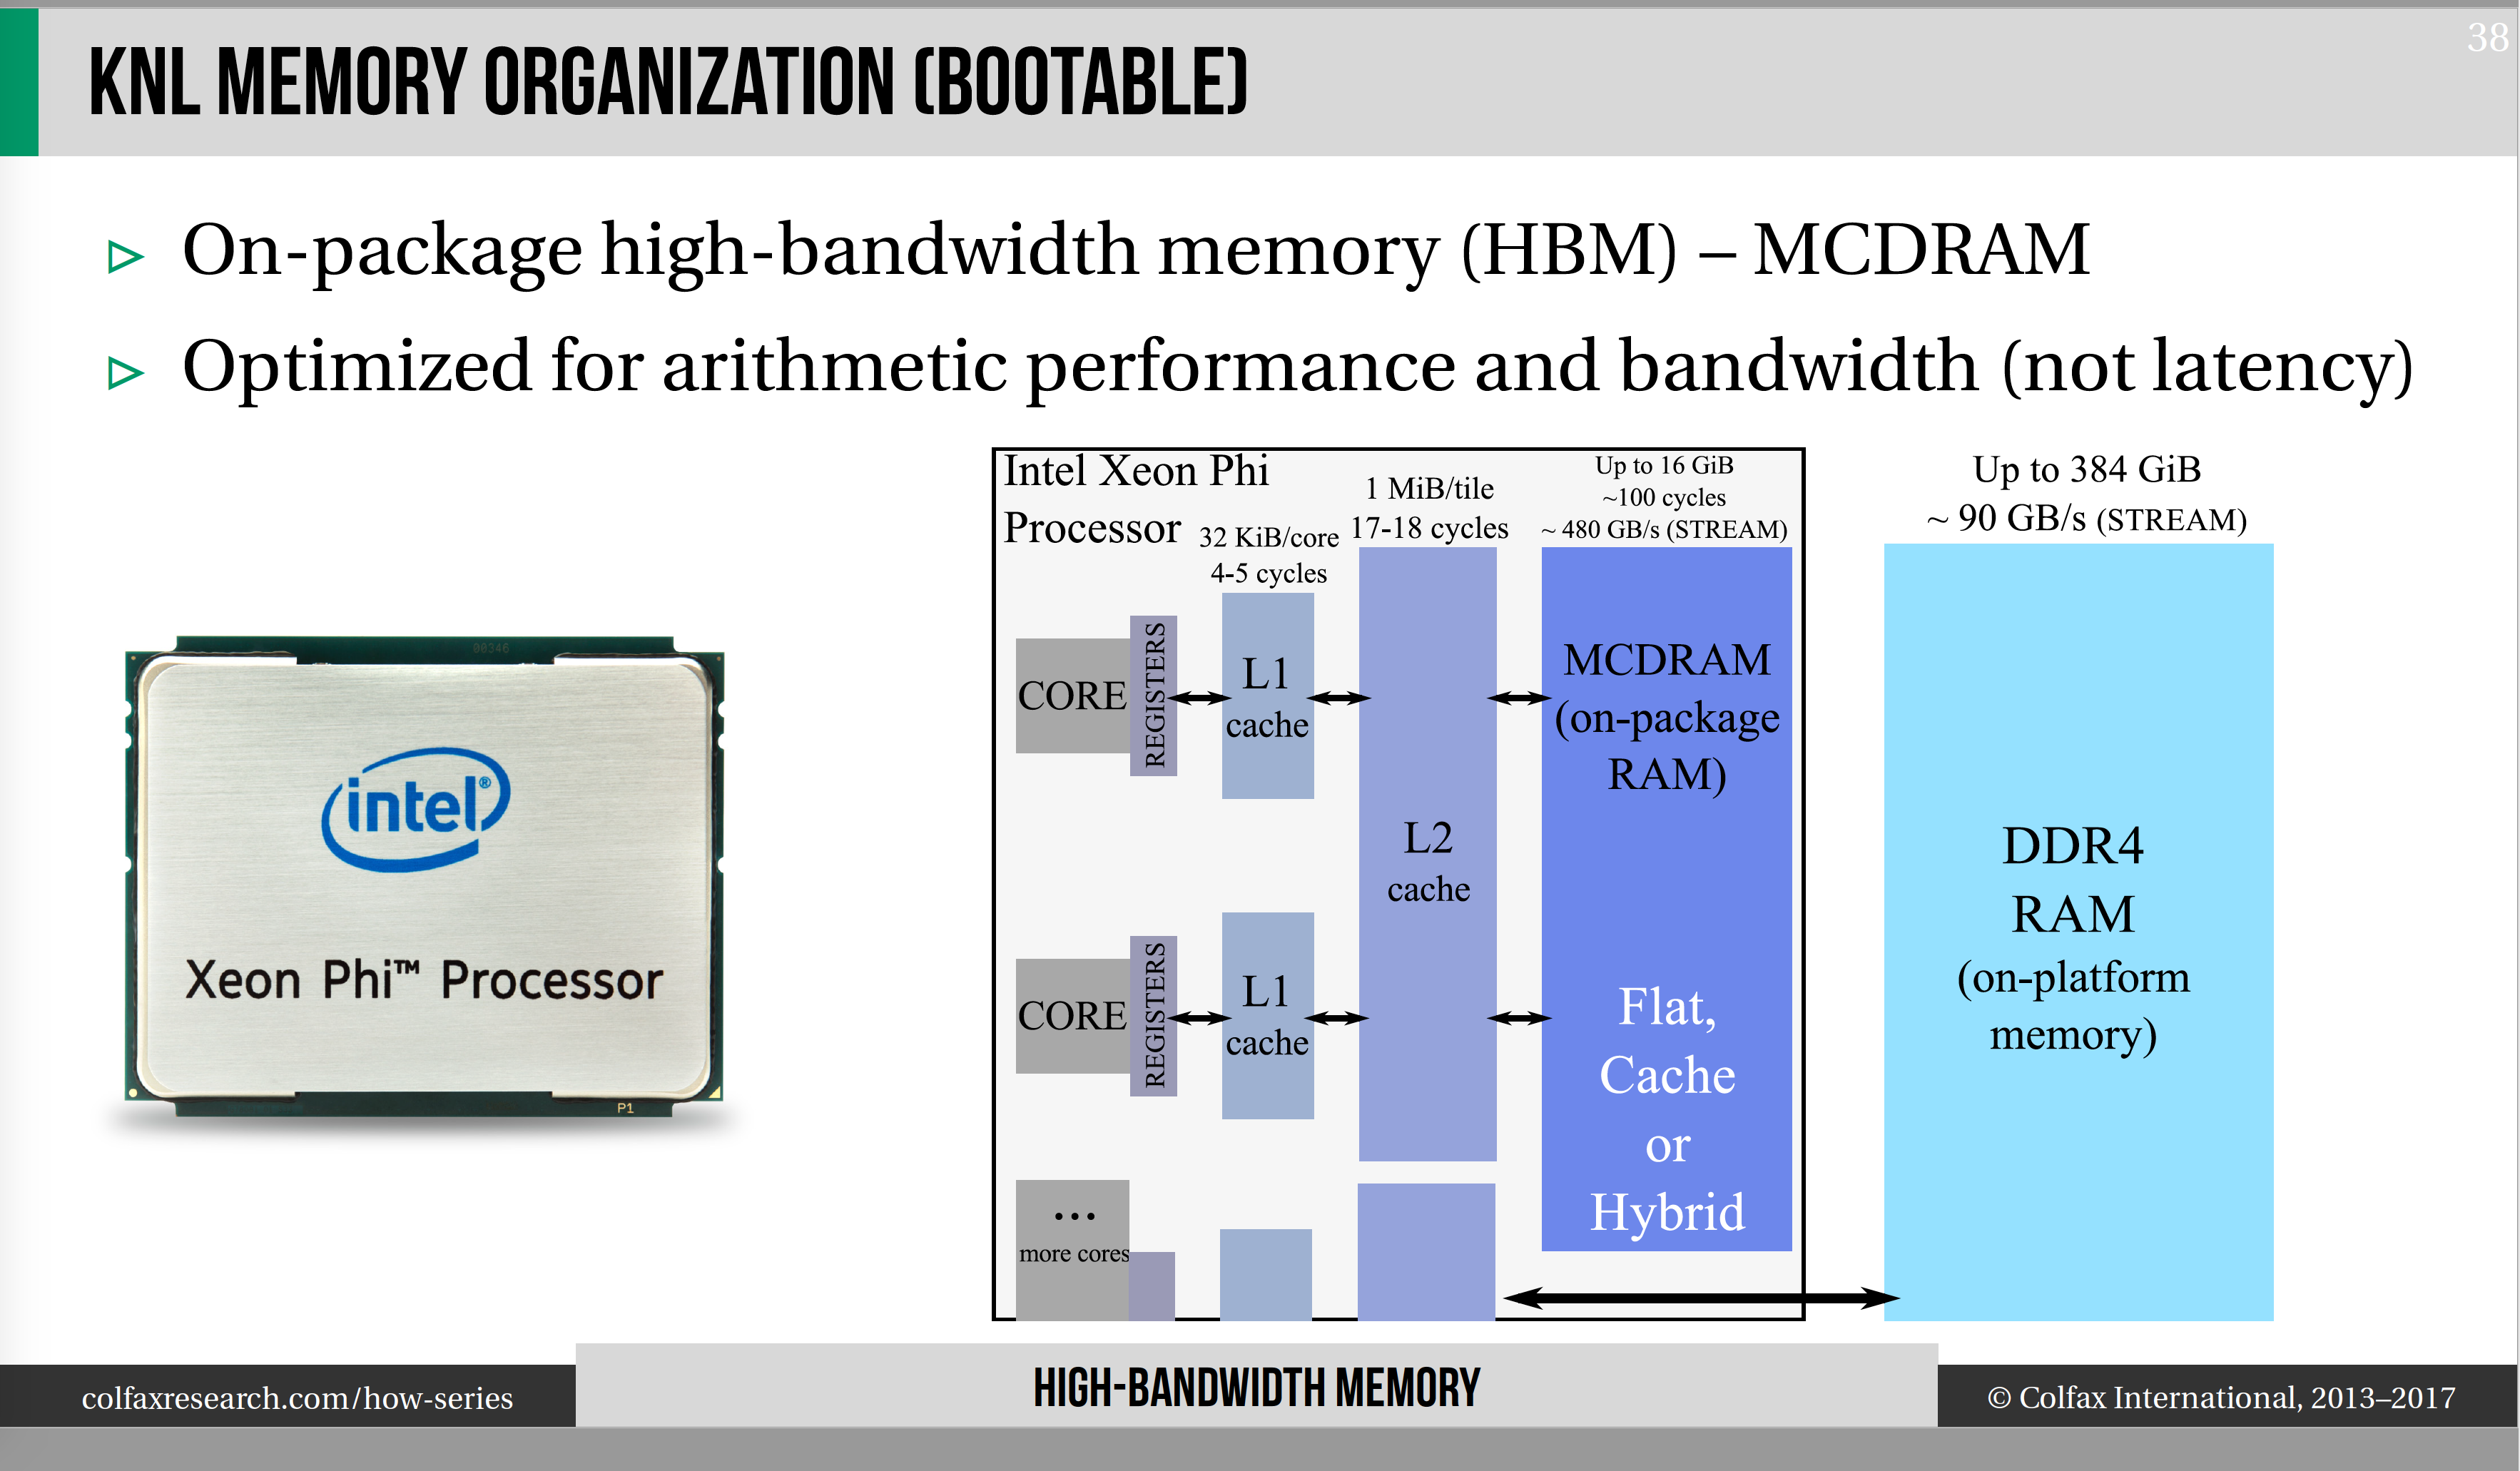 And the following diagram shows the High Bandwidth Memory Modes (Flat /  Cache / Hybrid):